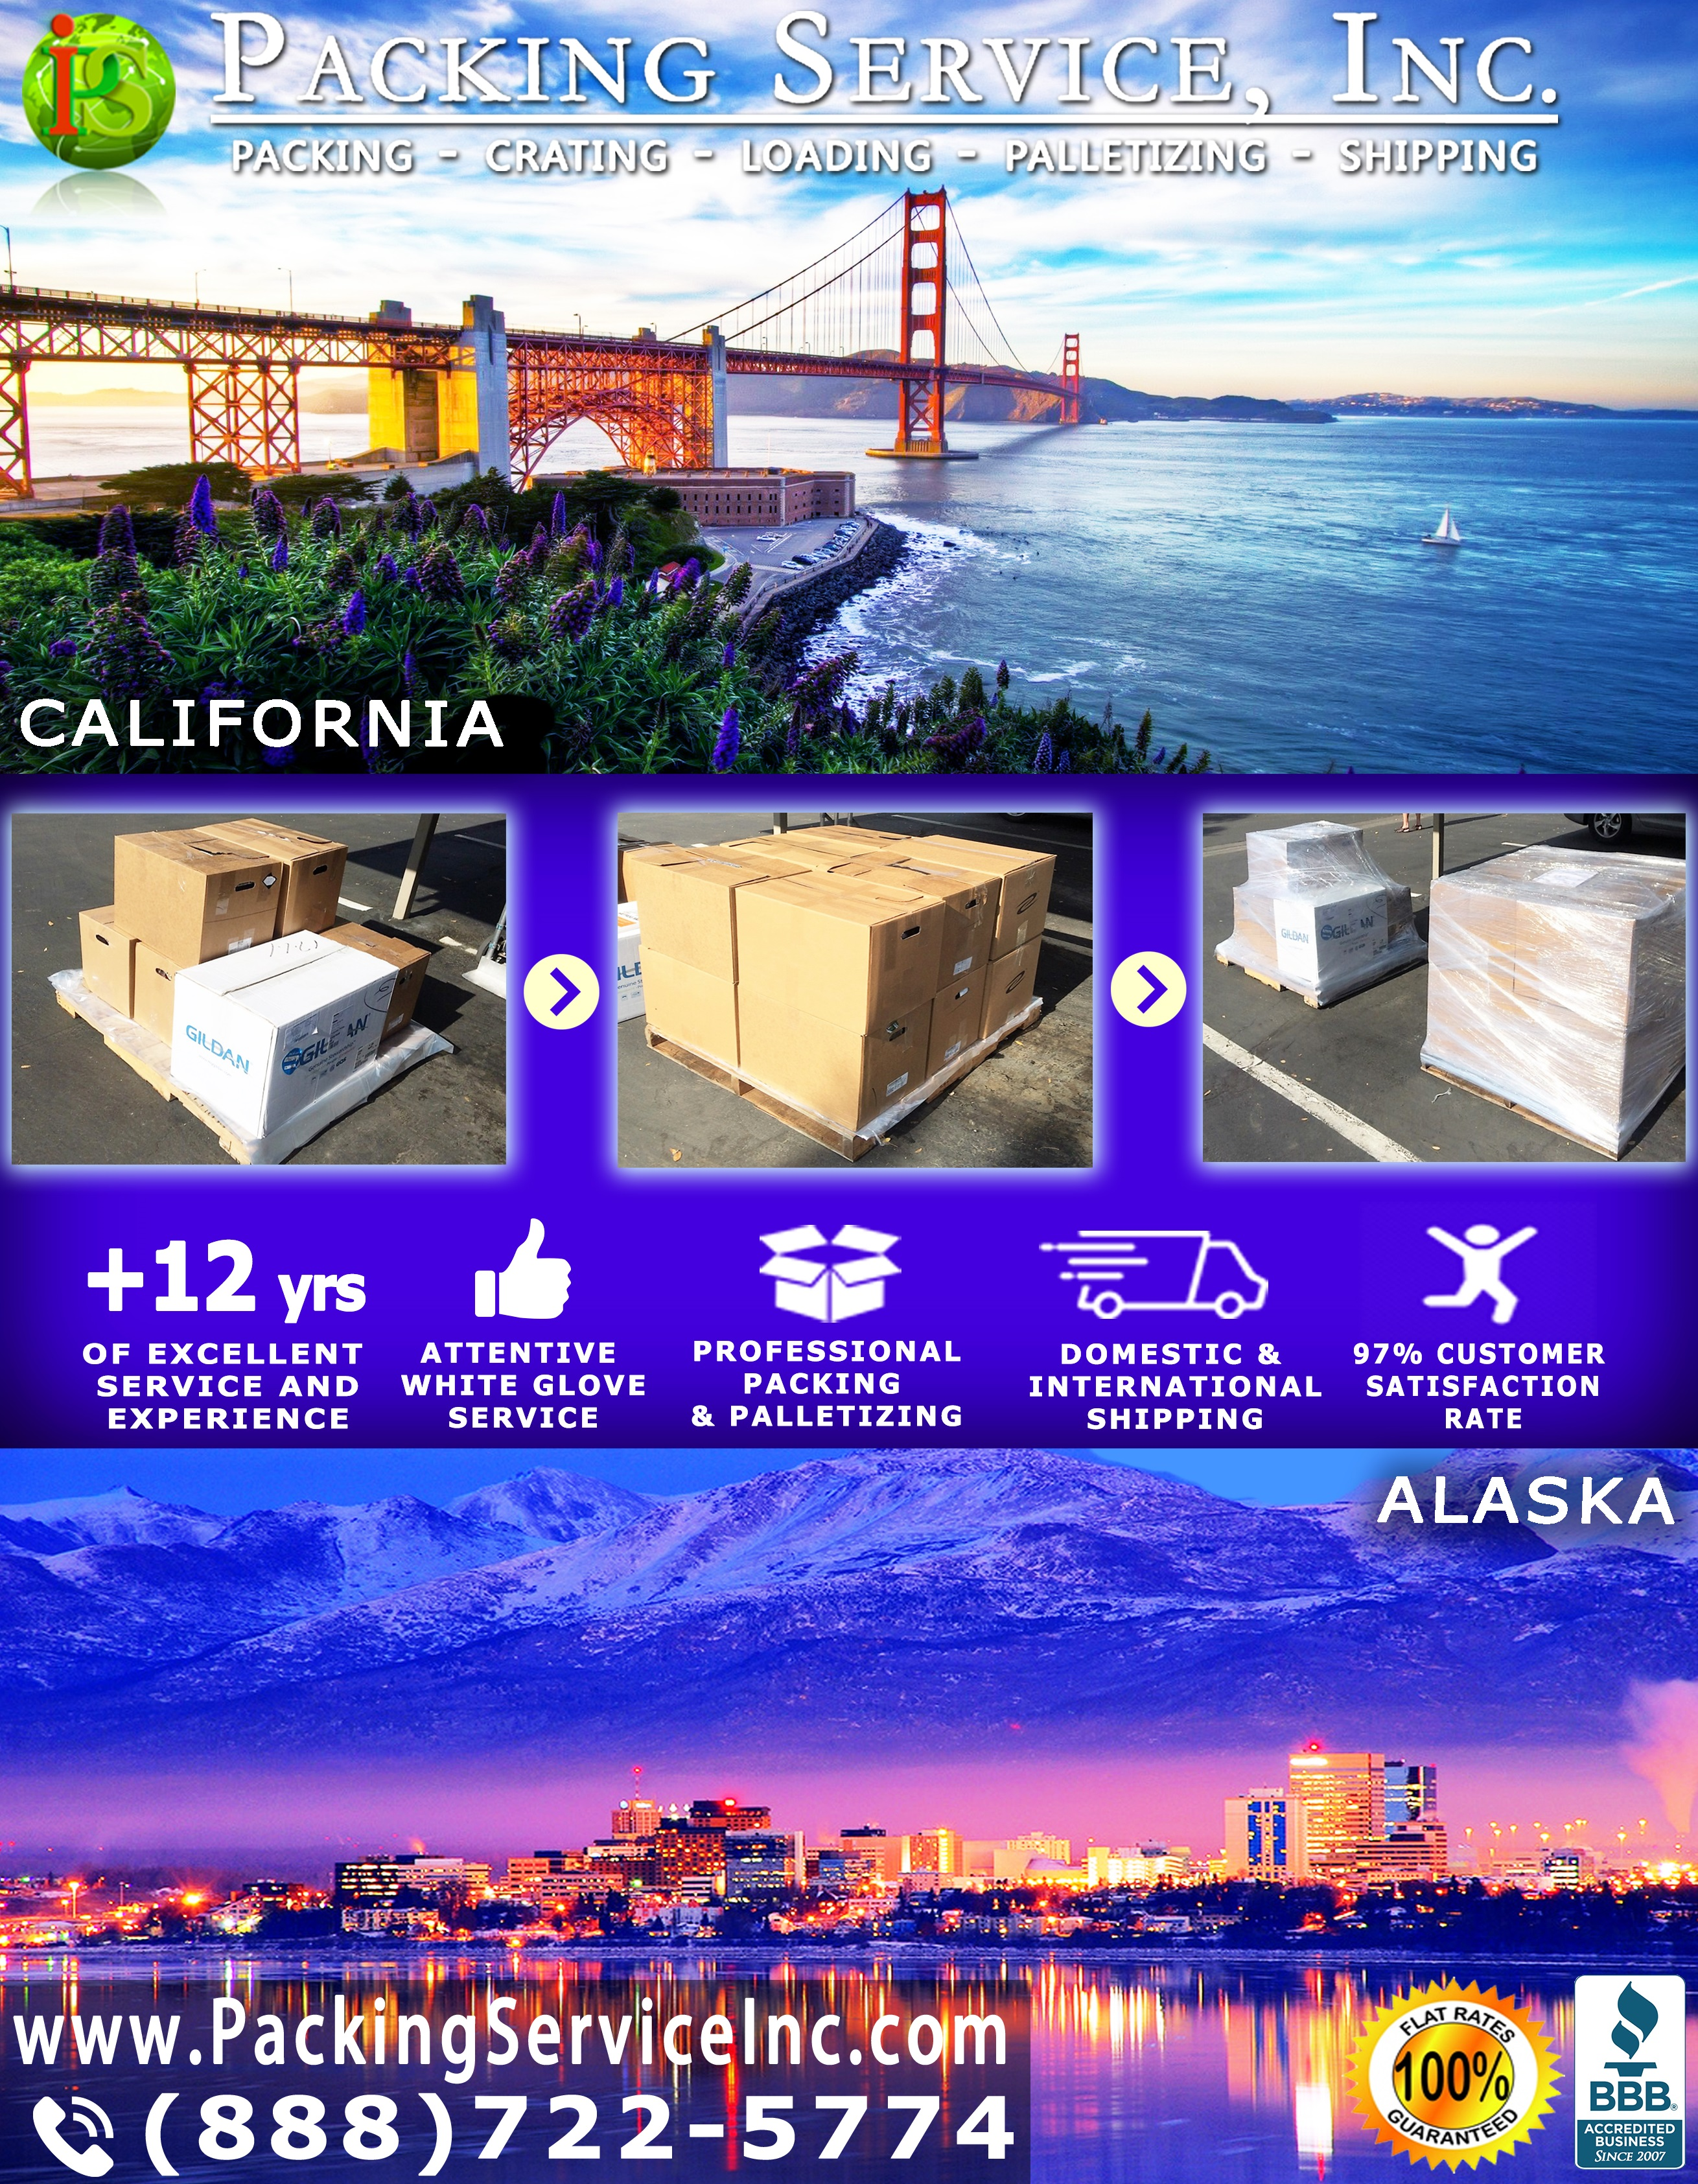 packing-boxes-palletizing-and-shipping-from-fresno-ca-to-palmer-ak-with-packing-service-inc-989